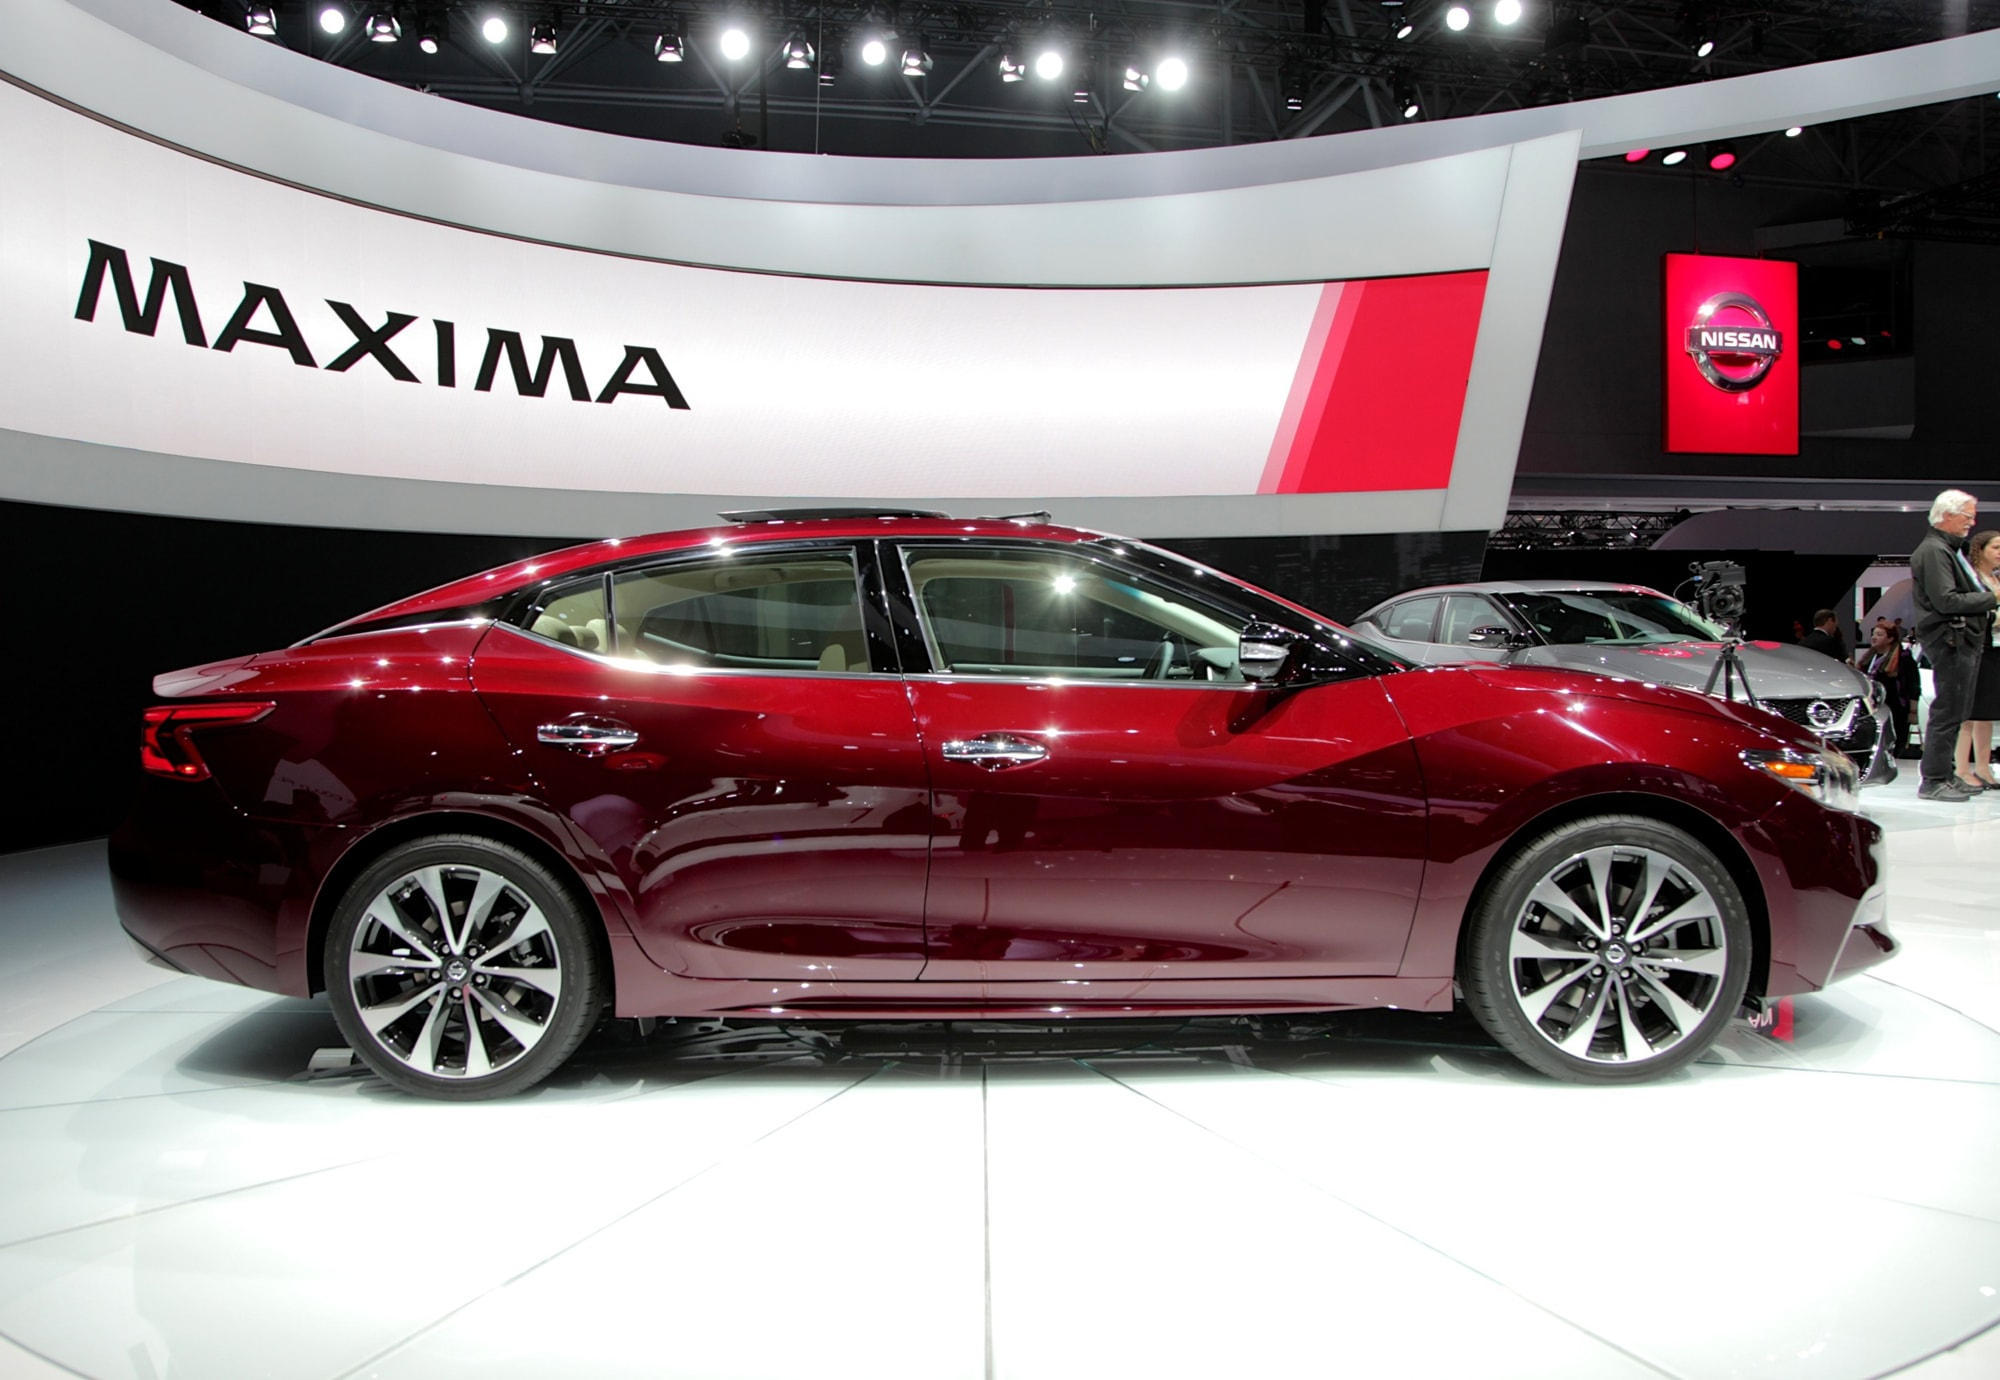 Nissan Maxima 8 Wallpapers hd